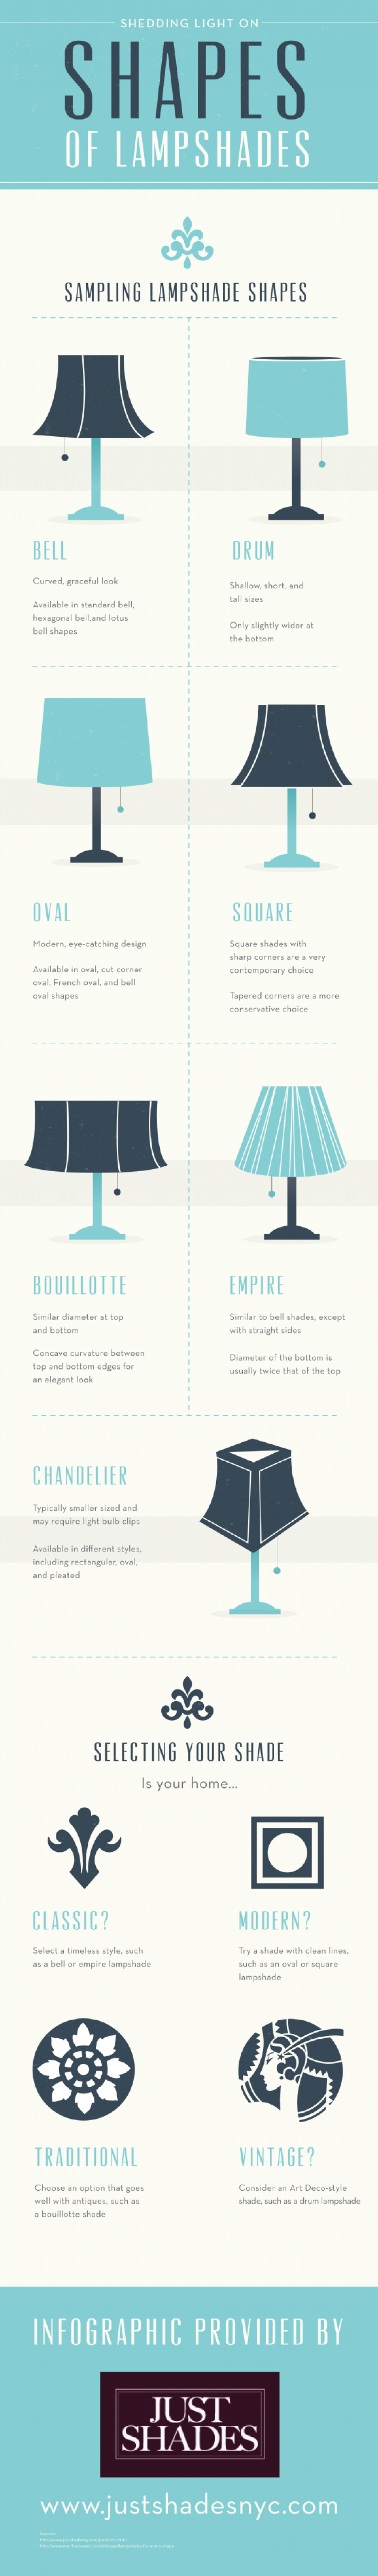 Shedding Light on Shapes of Lampshades Infographic